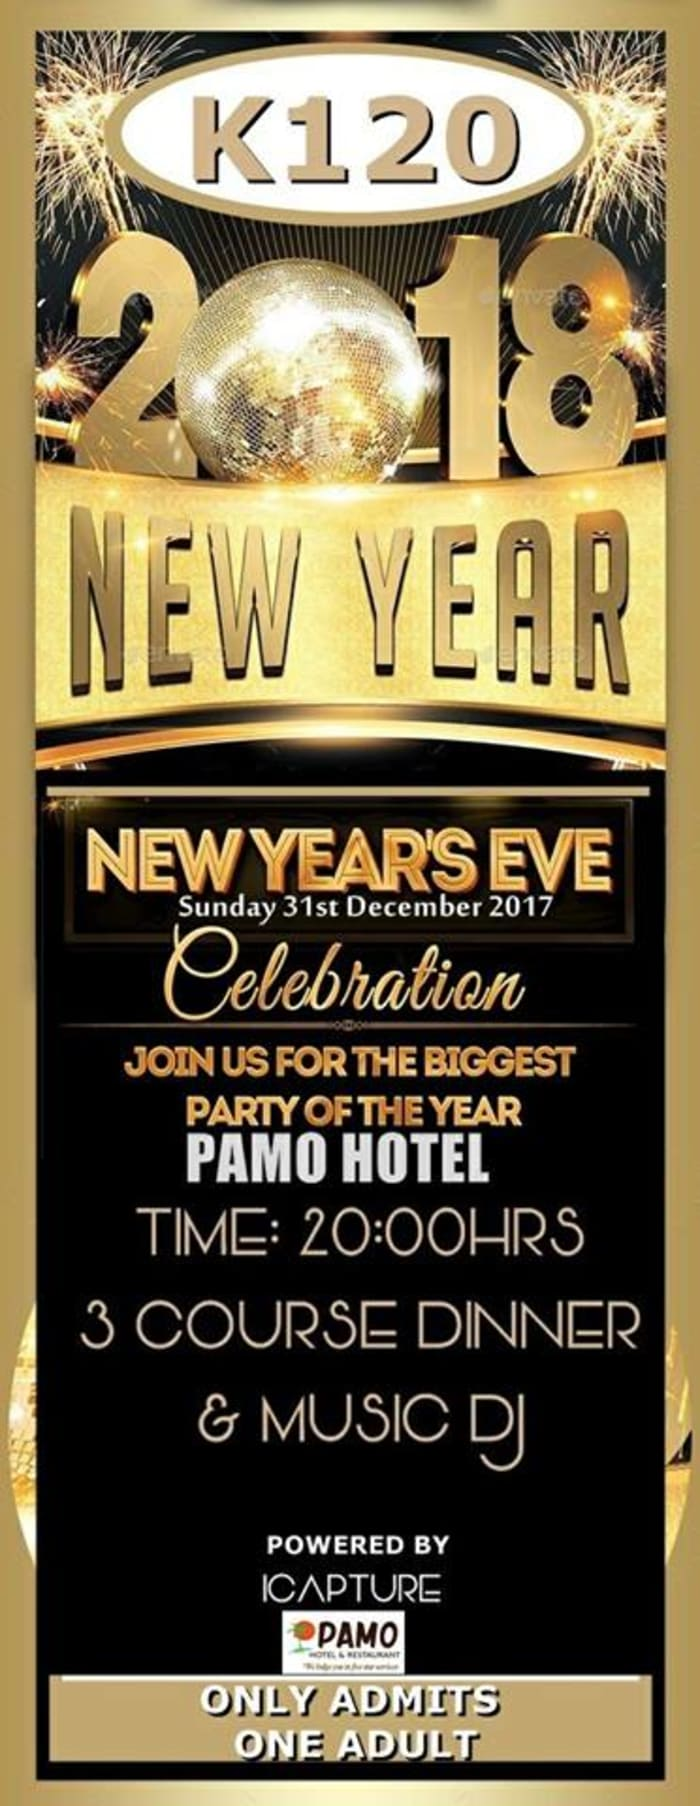 New Years Eve party celebration at Pamo Hotel